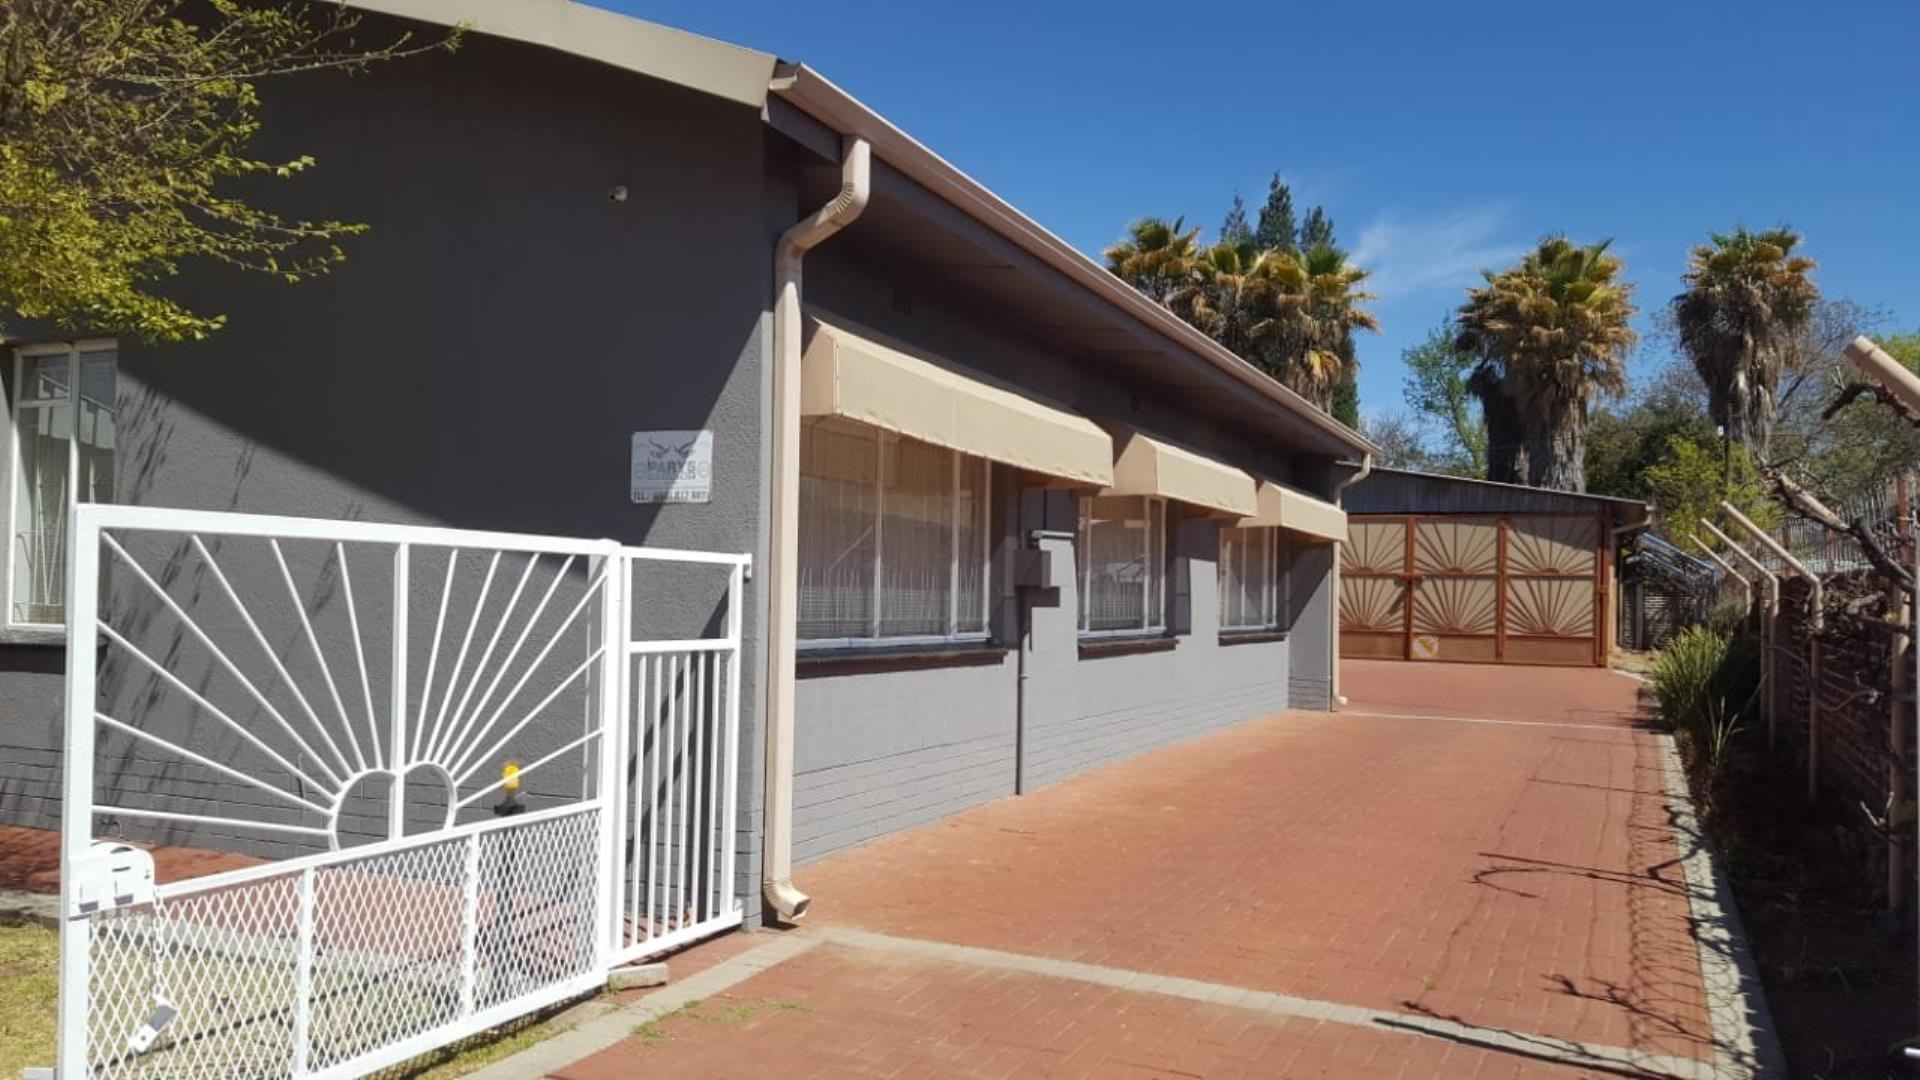 4 Bedroom  House for Sale in Parys - Free State